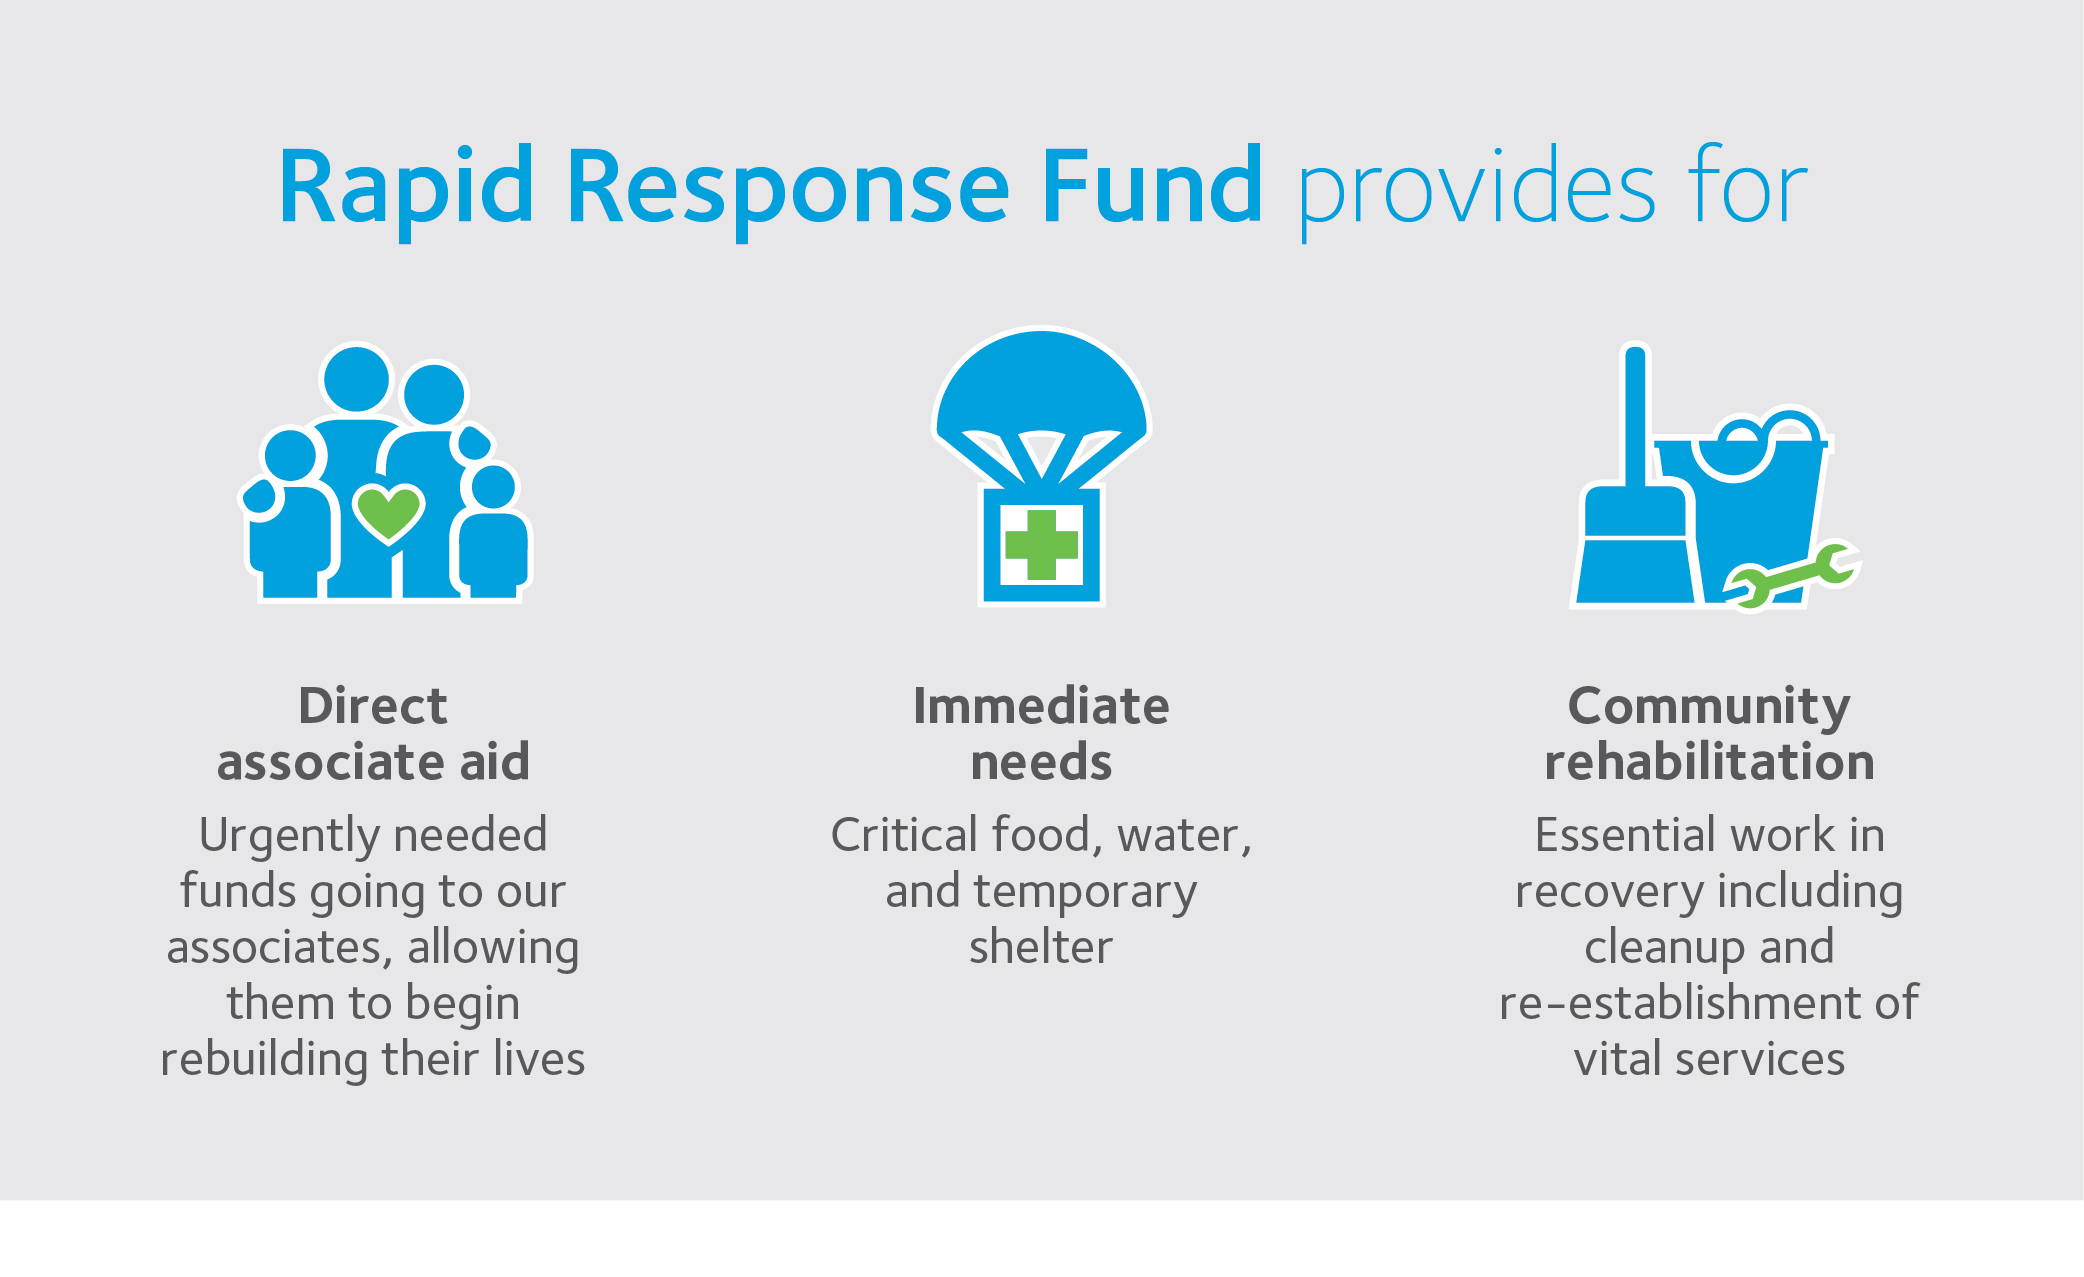 Rapid Response Fund provides for direct associate aid, immediate needs and community rehabilitation